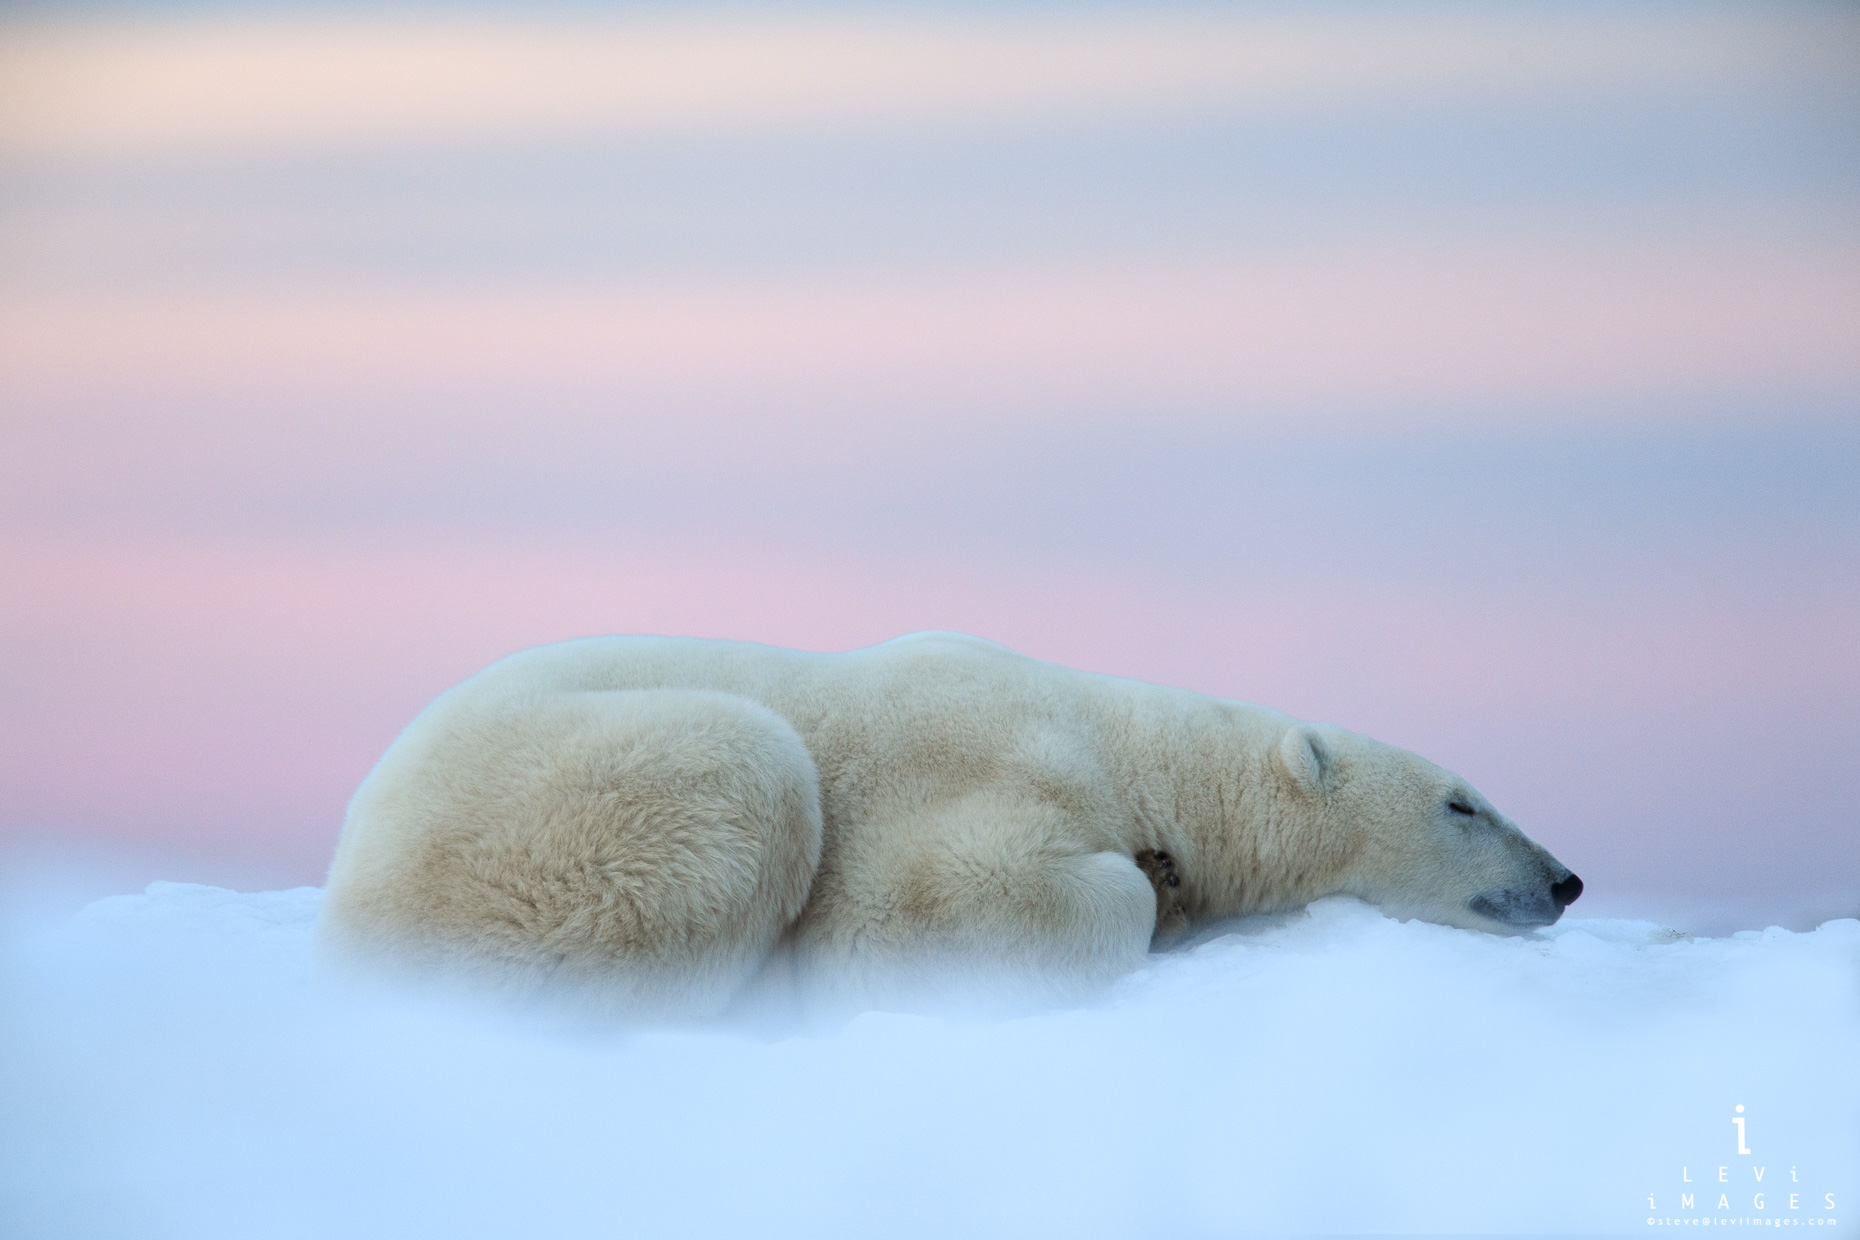 A dreamy Polar bear (Ursus maritimus) sleeps on snow in beautiful pink light. Hudson Bay, Manitoba, Canada